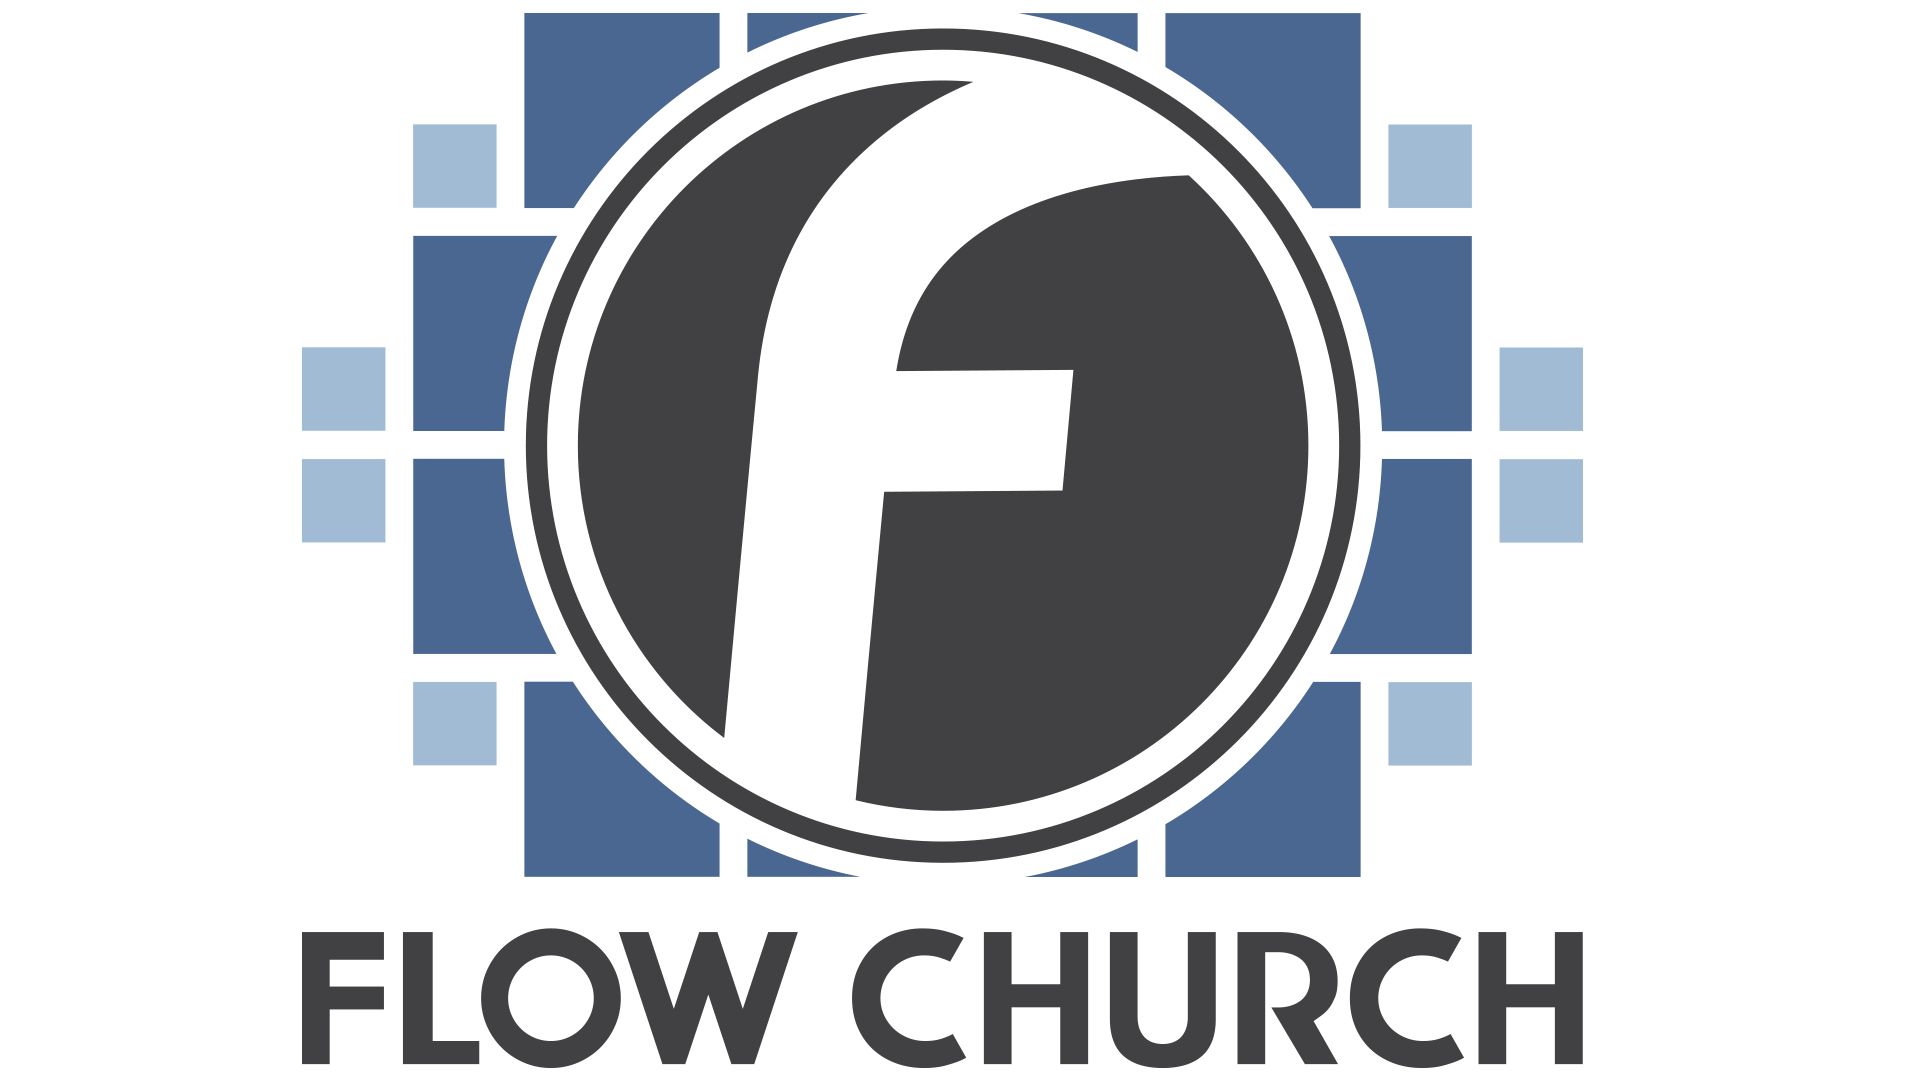 Flow Church